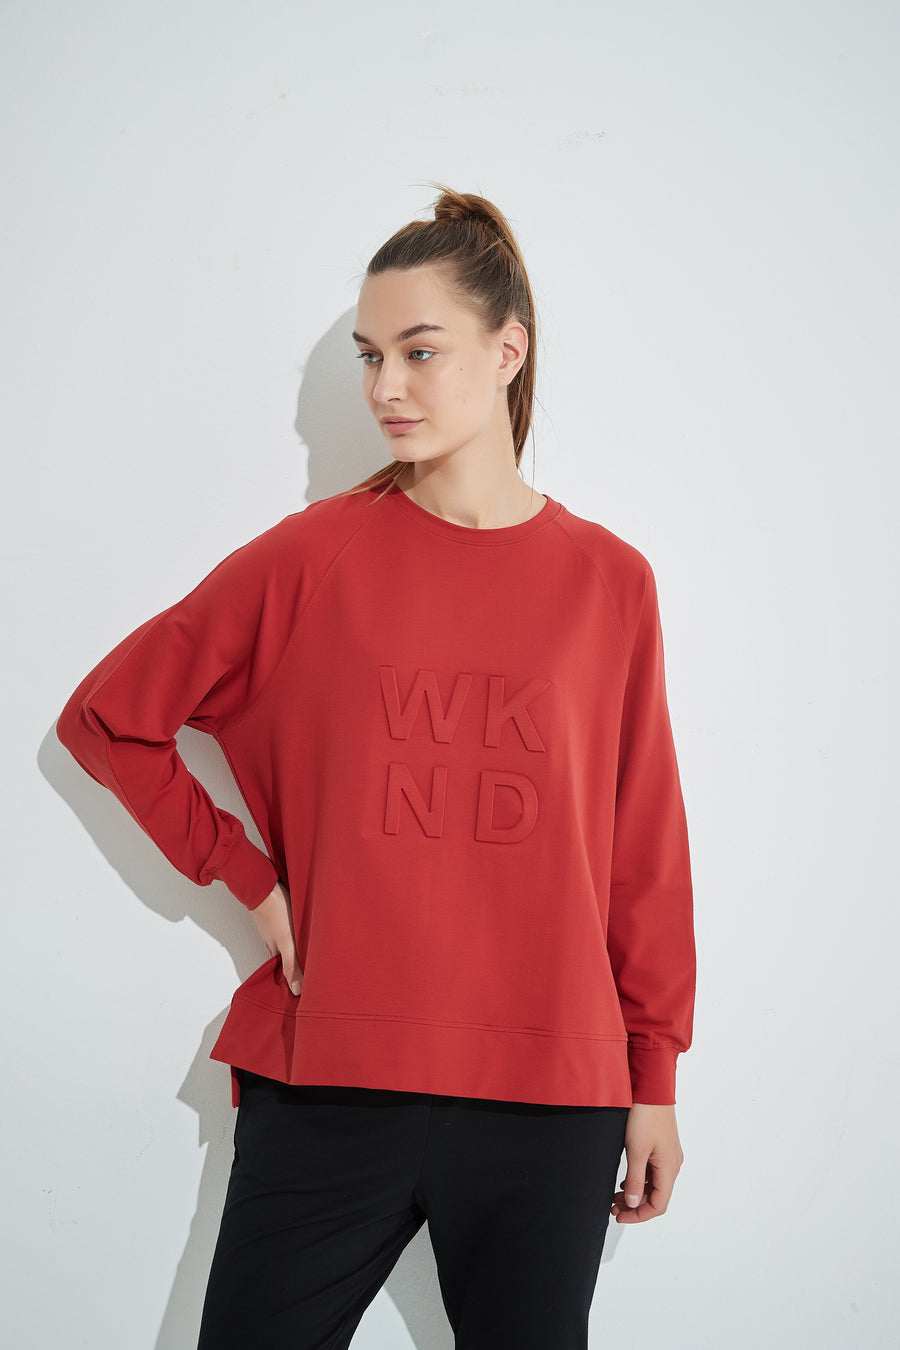 WKND Embossed Sweat - Brick